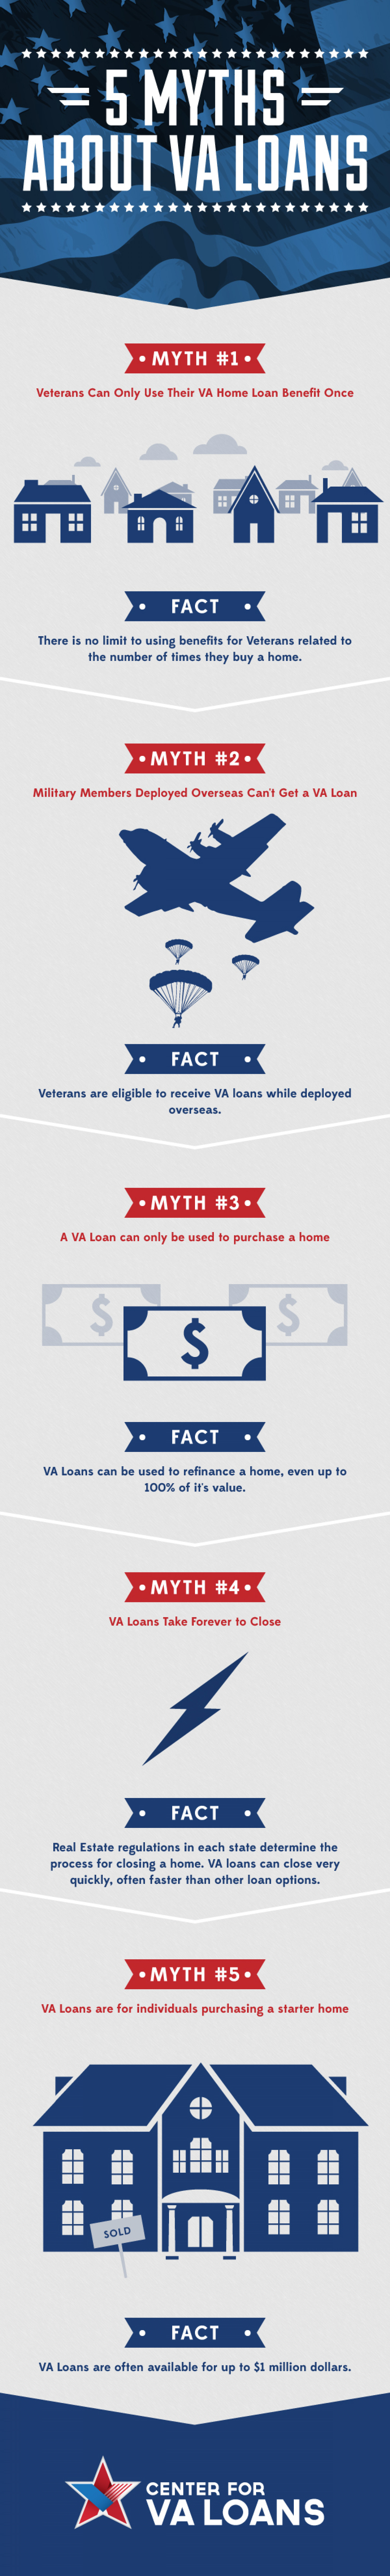 5 Myths and 5 Related Facts About VA Loans Infographic